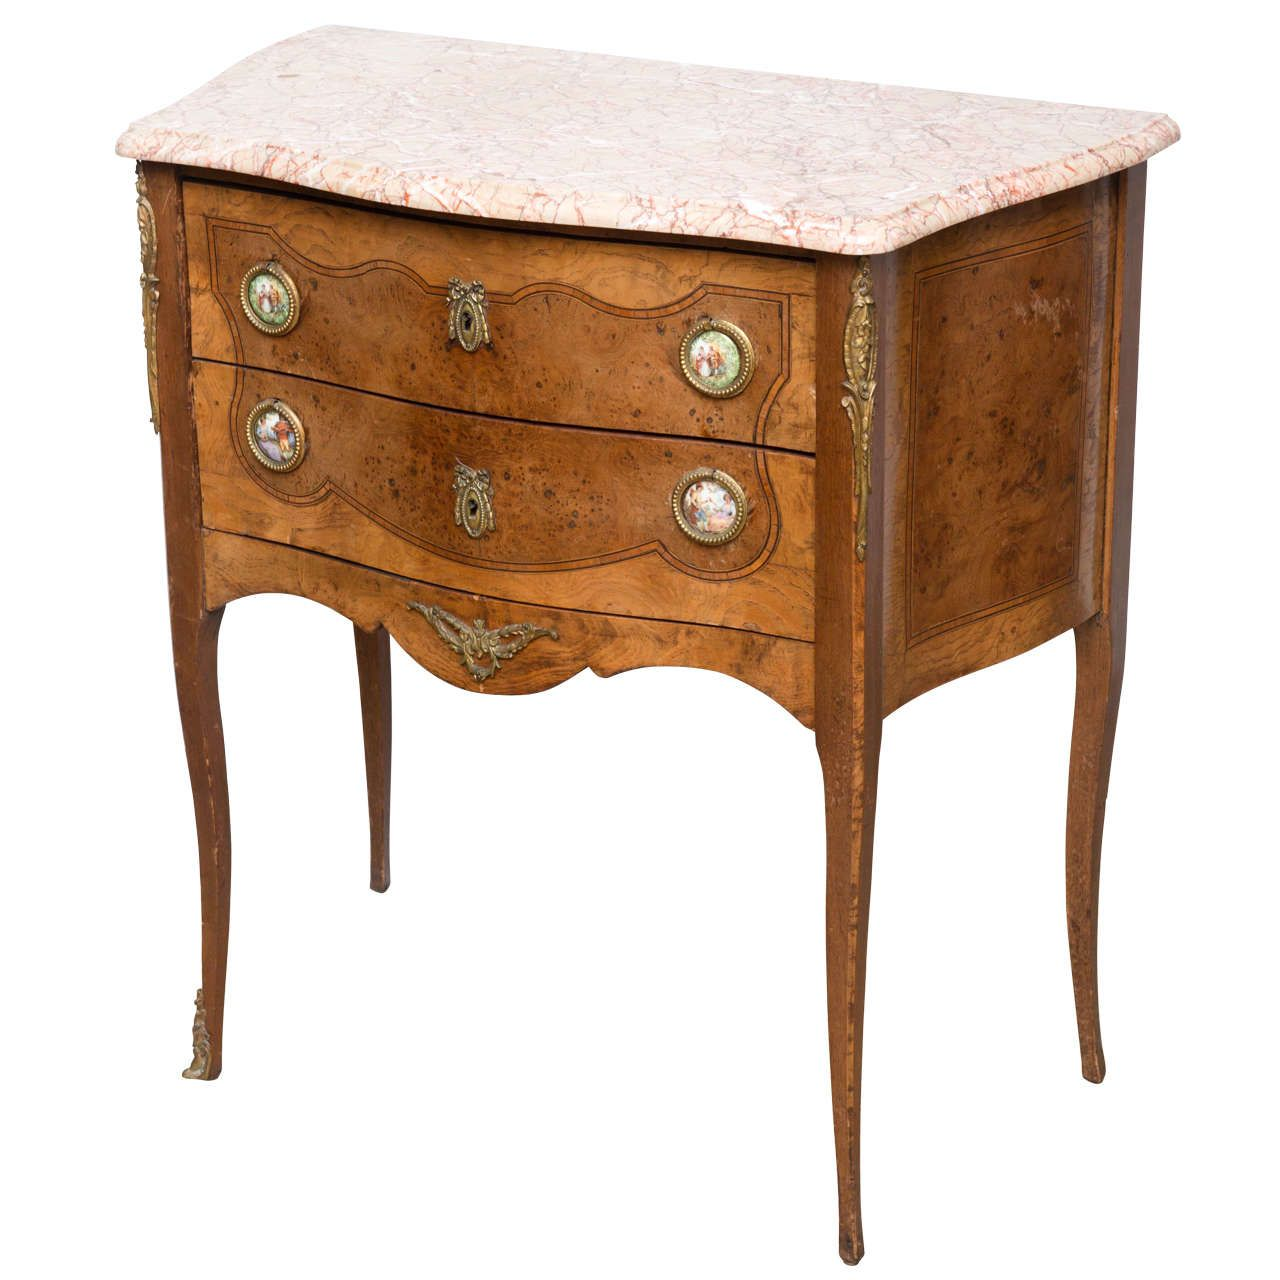 French Commode Side End Table with Porcelain Plaques 20th Century